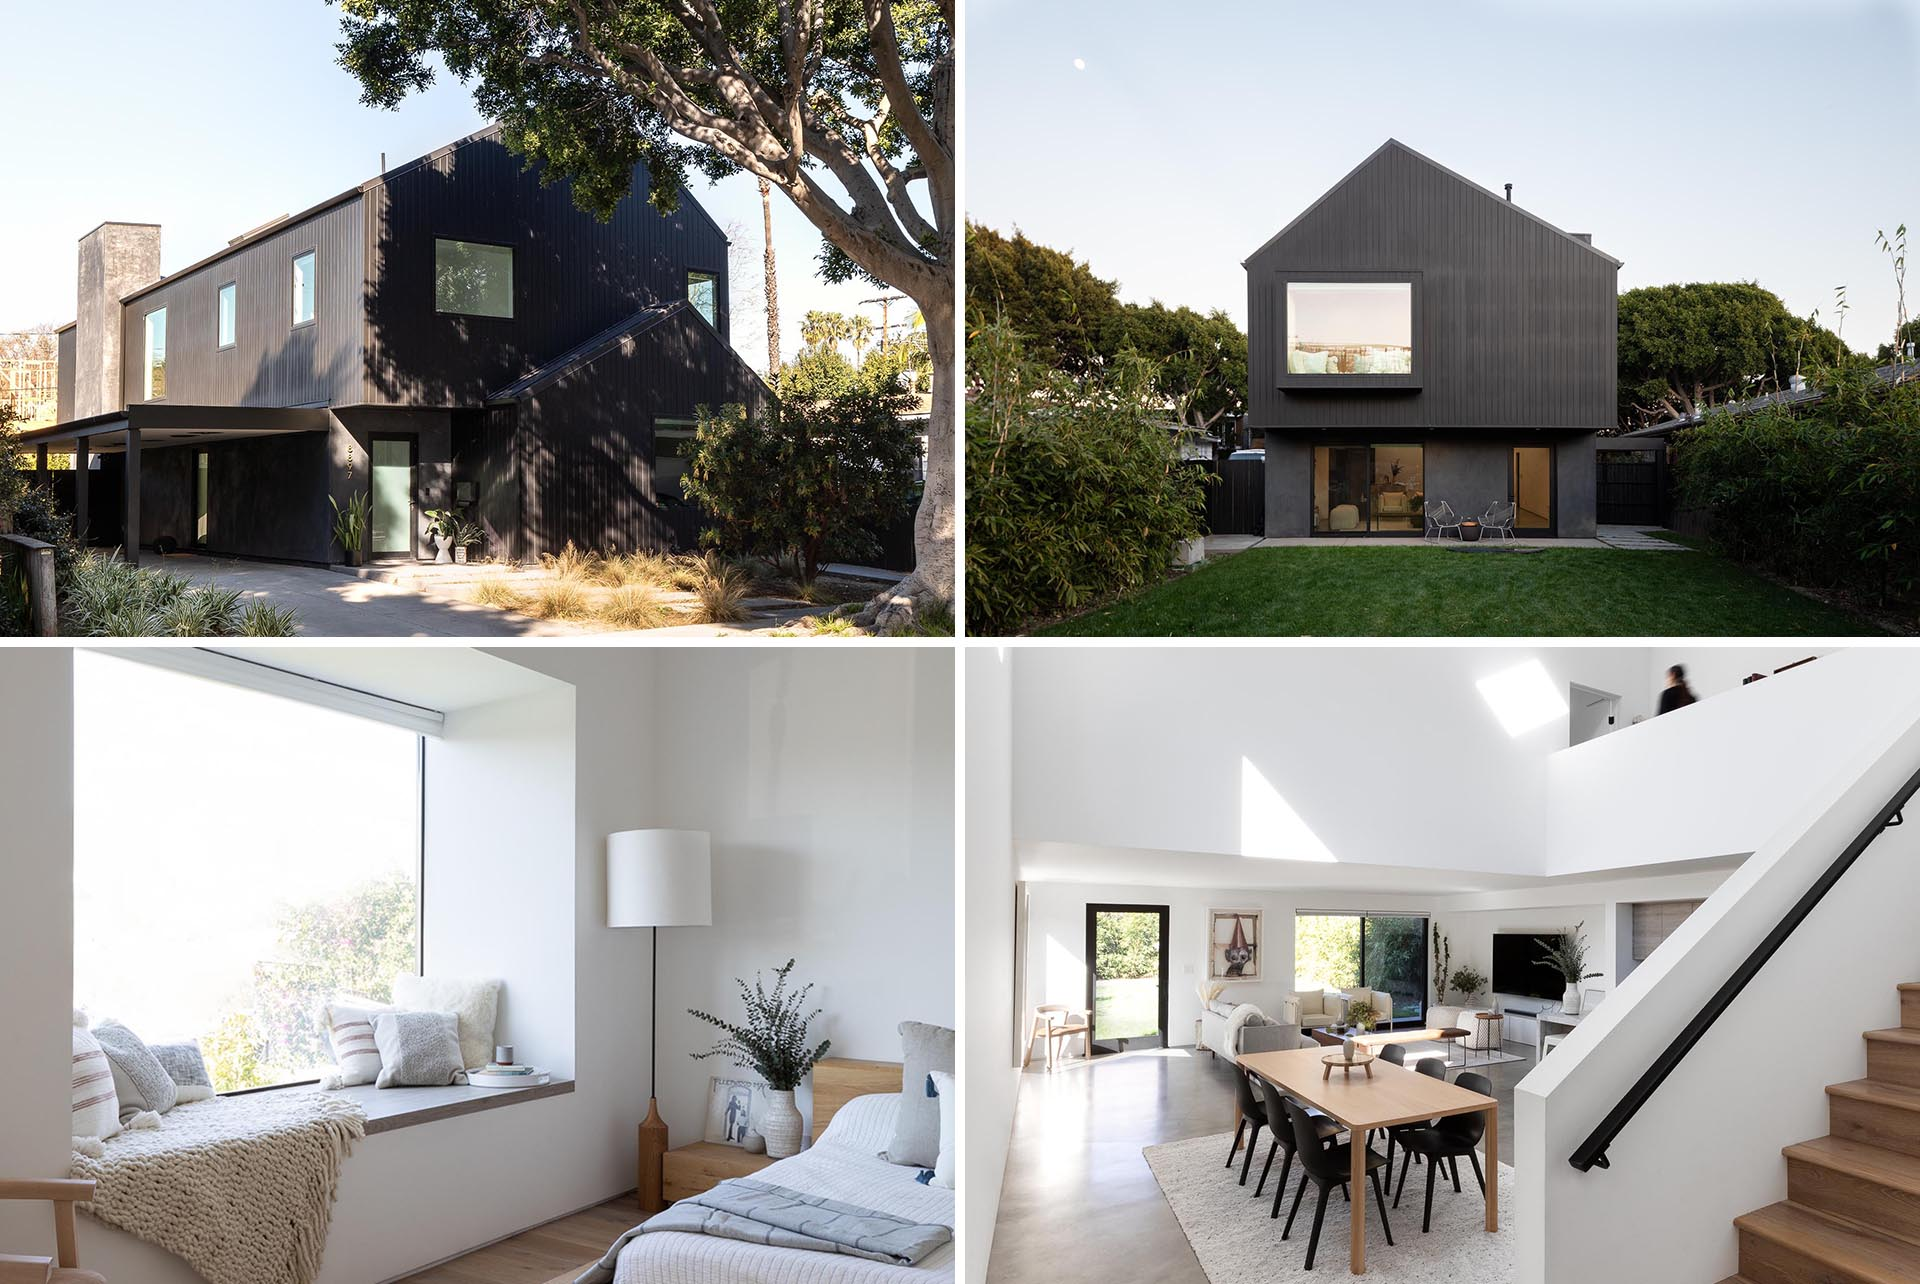 The dark and moody black exterior of the home was inspired by Japanese traditions like Shou Sugi Ban, while the interior is bright, white, and open.